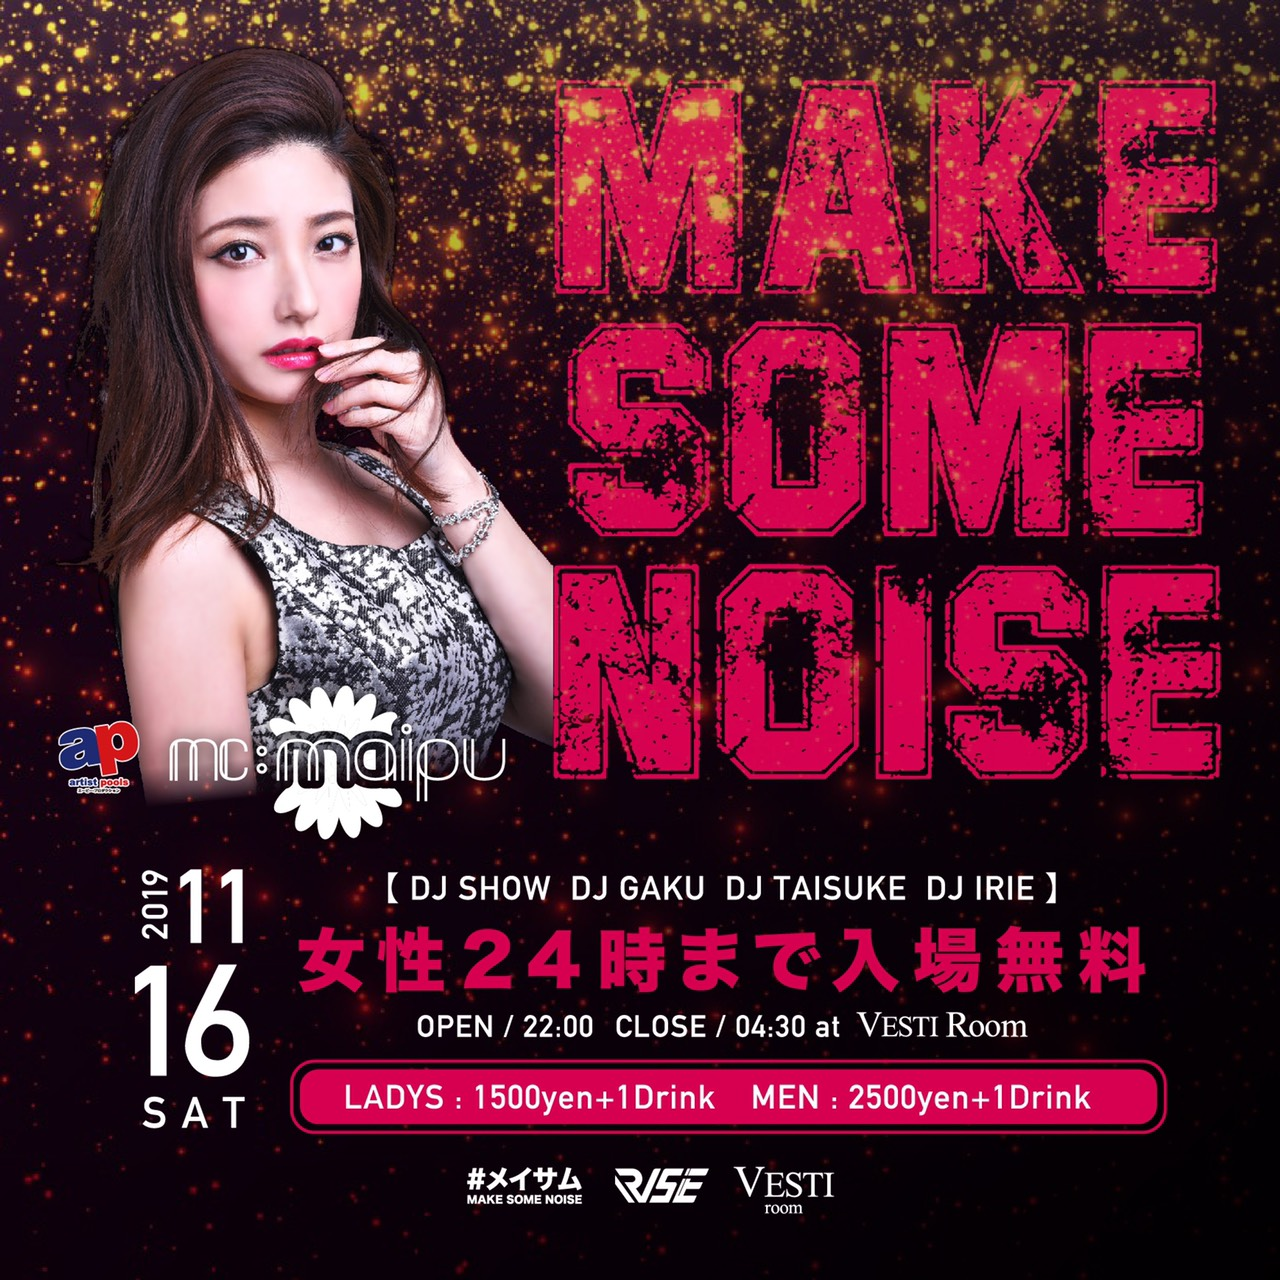 #メイサム MAKE SOME NOISE